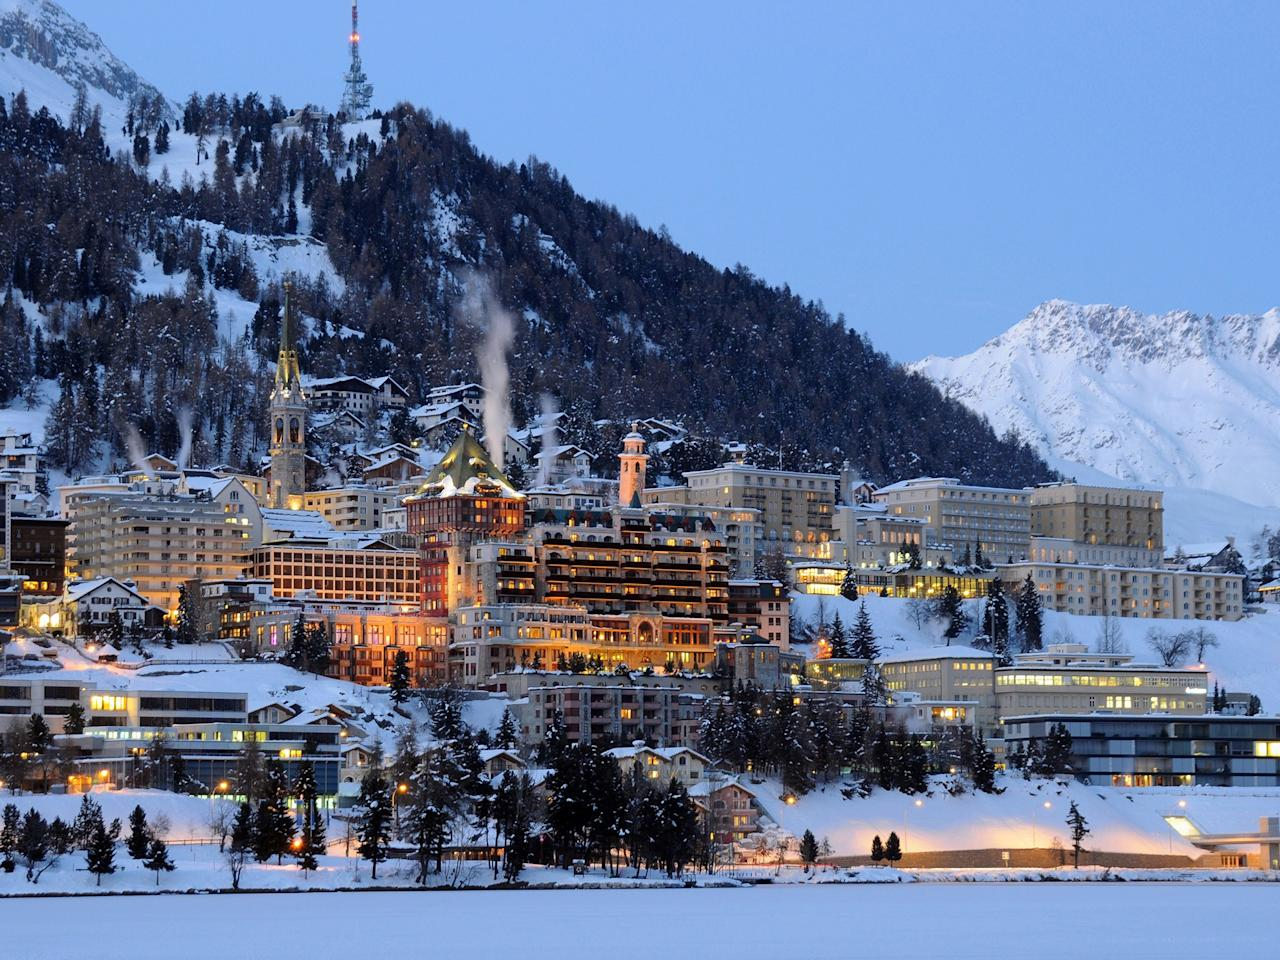 """<p>Welcome to the birthplace of alpine winter tourism. St. Moritz, touted as the ski resort """"on top of the world,"""" has deep roots in skiing. The resort opened in 1864, built one of the first Swiss lifts in 1935, and has hosted the Winter Olympics twice—in 1928 and 1948. Located in upper Engadine, this high-end ski destination begins at an elevation of nearly 6,000 feet and only increases as you reach the tops of its surrounding peaks. Join the hoards of well-heeled Swiss and international jet-setters who visit St. Moritz looking to enjoy the good life.</p> <p><strong>Stats:</strong> With 56 lifts giving you access to <a href=""""https://www.stmoritz.com/en/ski-alpine/"""" target=""""_blank"""">87 runs</a>, you won't get bored easily. Pay between roughly $68 and $84 per <a href=""""https://www.engadin.ch/en/snow-deal-shop/"""" target=""""_blank"""">adult day pass</a> and experience nearly 220 miles of runs.</p> <p><strong>Where to eat and drink nearby:</strong> From Patrizier Stuben Swiss classics at the oldest farmhouse in town to celebrity chef Nobu's Japanese-Peruvian fusion at La Coupole-Matsuhisa, <a href=""""http://www.cntraveler.com/hotels/switzerland/sankt-moritz-dorf/badrutt-s-palace-hotel--st--moritz?mbid=synd_yahoo_rss"""" target=""""_blank"""">Badrutt's Palace</a> hosts the area's best places to eat and drink—and the modern-day jet-setters who come to try them out. Set in a 17th-century farmhouse, <a href=""""https://www.talvo.ch/en/"""" target=""""_blank"""">Talvo by Dalsass</a> serves nature-inspired dishes with a Mediterranean twist.</p> <p><strong>Where to stay:</strong> Treat yourself to the extravagance of Badrutt's Palace, the place where your sheets are warmed with hot water bottles each night—and where <a href=""""https://www.cntraveler.com/galleries/2015-01-07/50-best-travel-films-of-the-past-50-years?mbid=synd_yahoo_rss"""" target=""""_blank"""">Alfred Hitchcock</a> once spent his honeymoon. (It also has one of <a href=""""https://www.cntraveler.com/galleries/2016-01-08/gold-list-2016-the-most-tranquil-spa"""